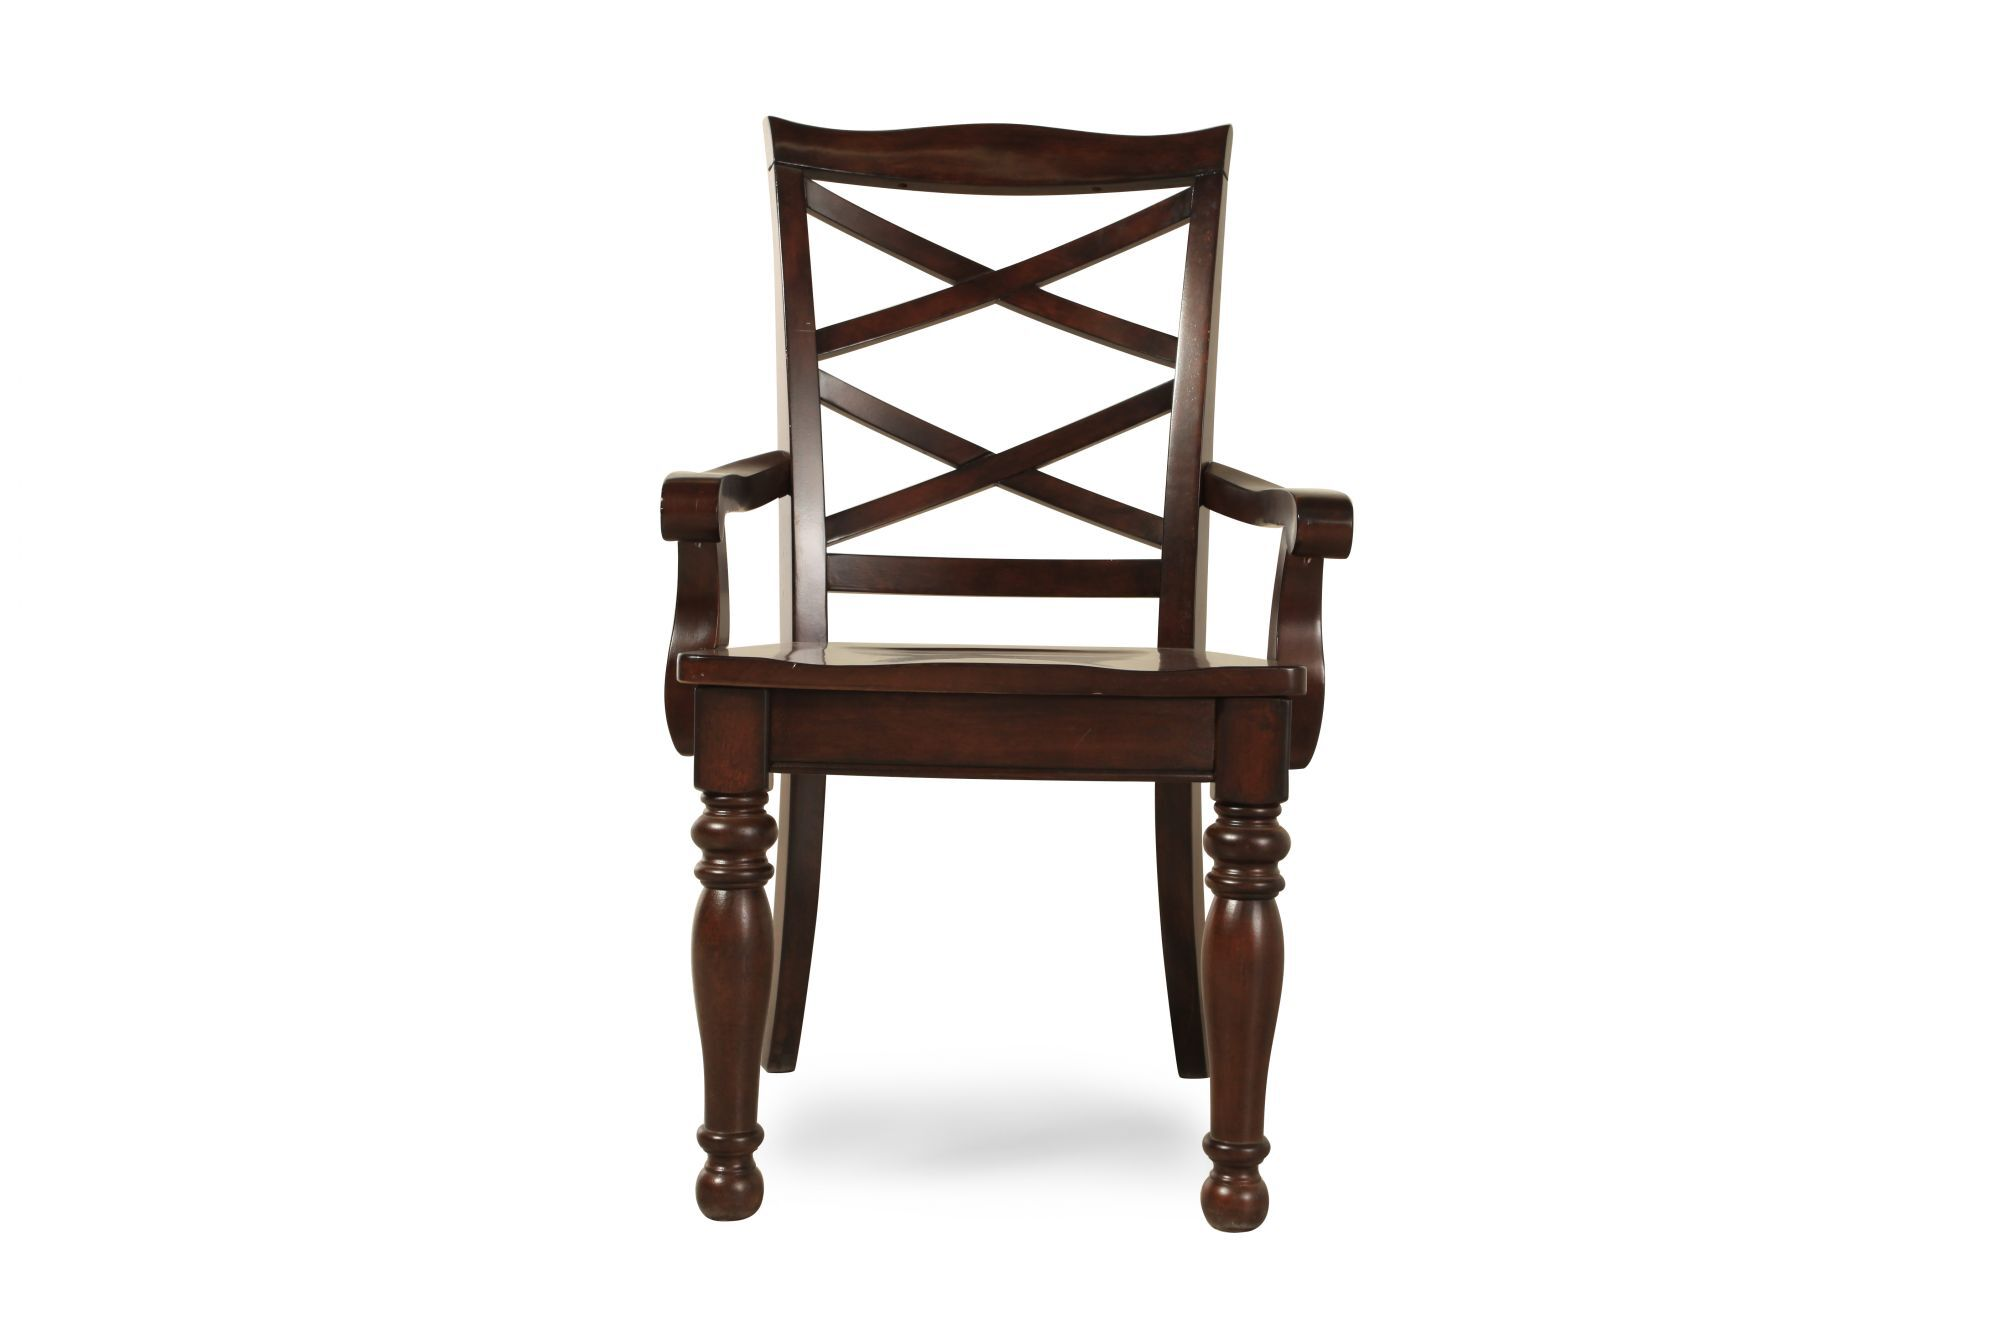 kitchen chairs wood hanging swing outdoor dining room mathis brothers furniture two piece double x back 40 39 arm